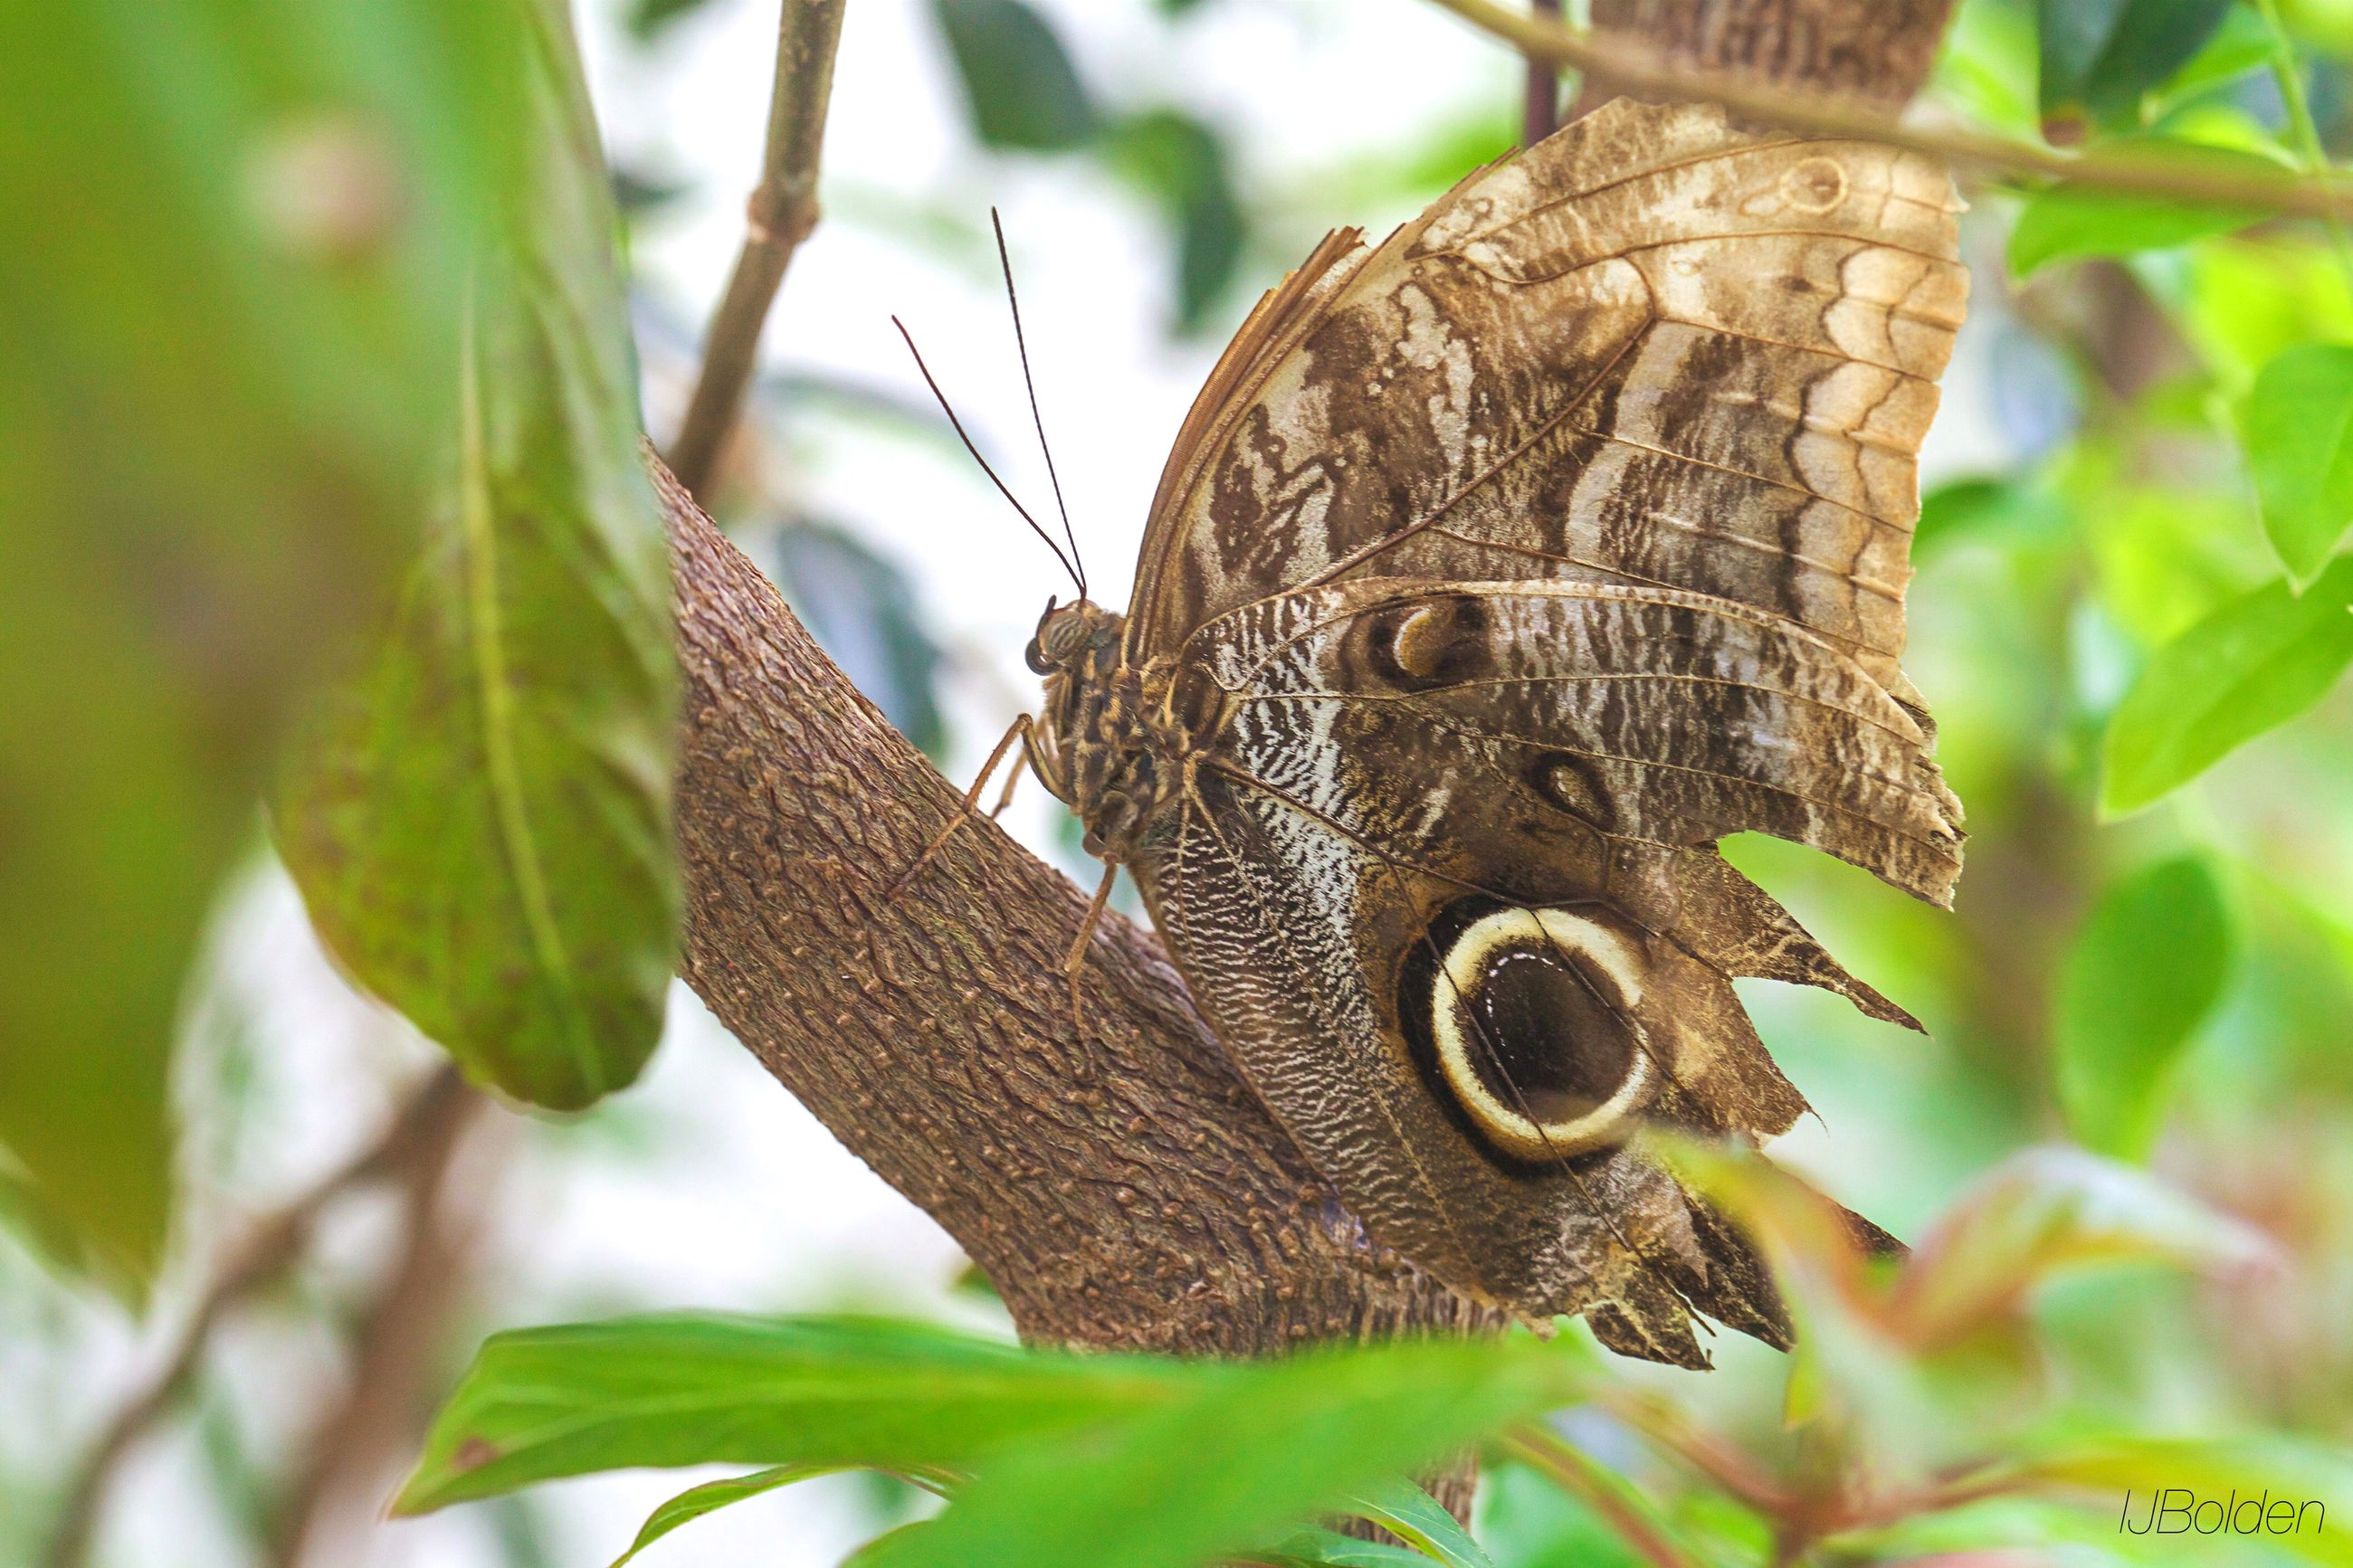 animals in the wild, one animal, wildlife, animal themes, focus on foreground, close-up, insect, leaf, nature, tree, growth, butterfly, butterfly - insect, plant, natural pattern, beauty in nature, outdoors, day, branch, forest